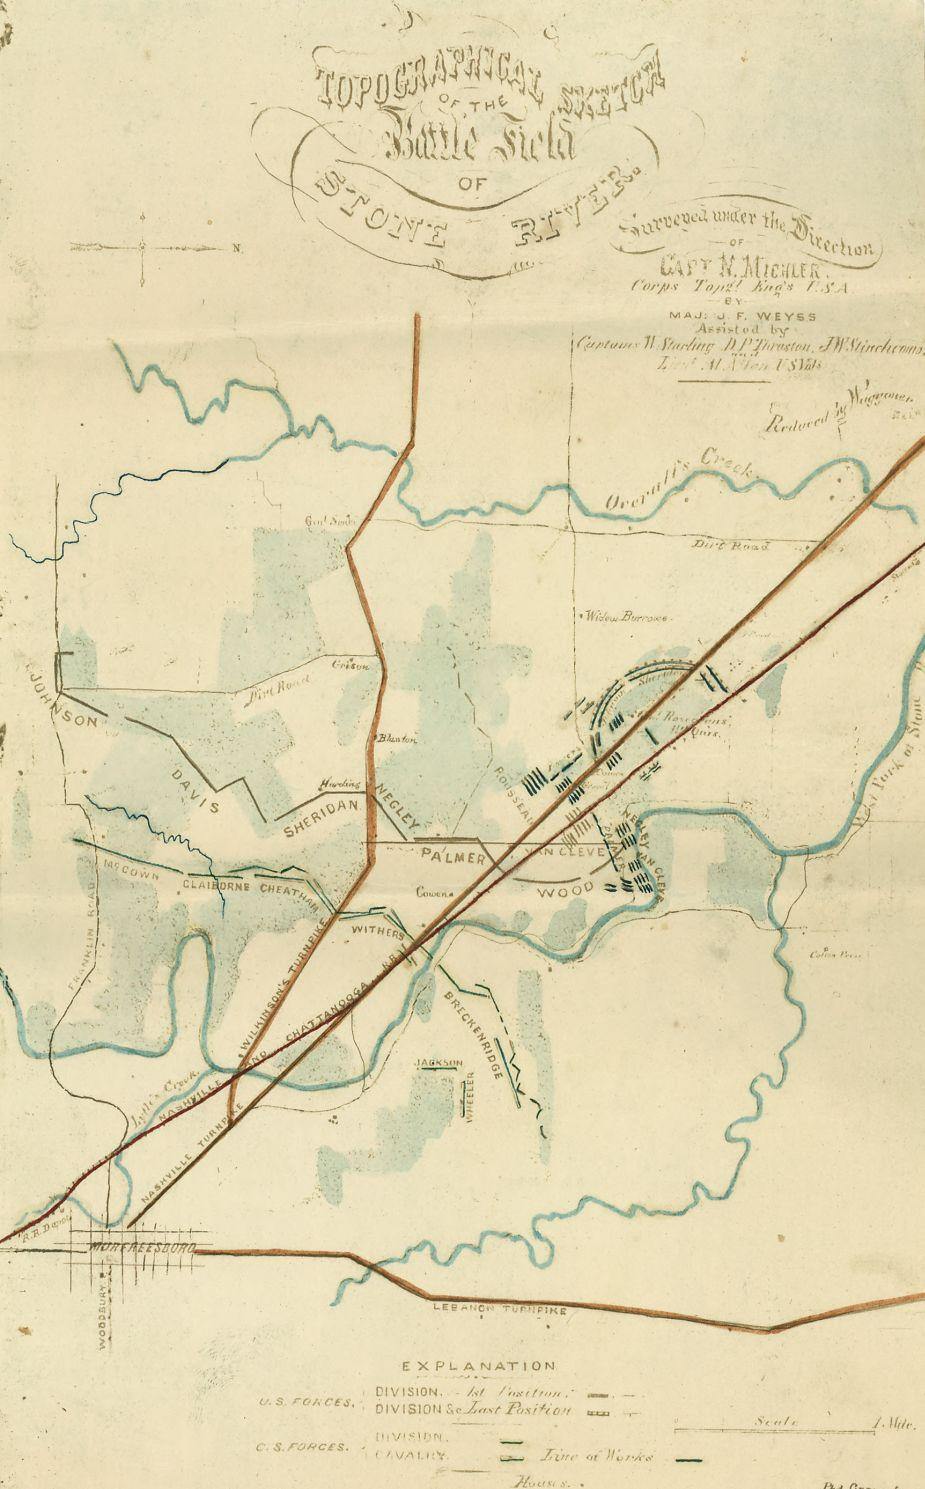 Topographical sketch of the Battlefield of Stone River